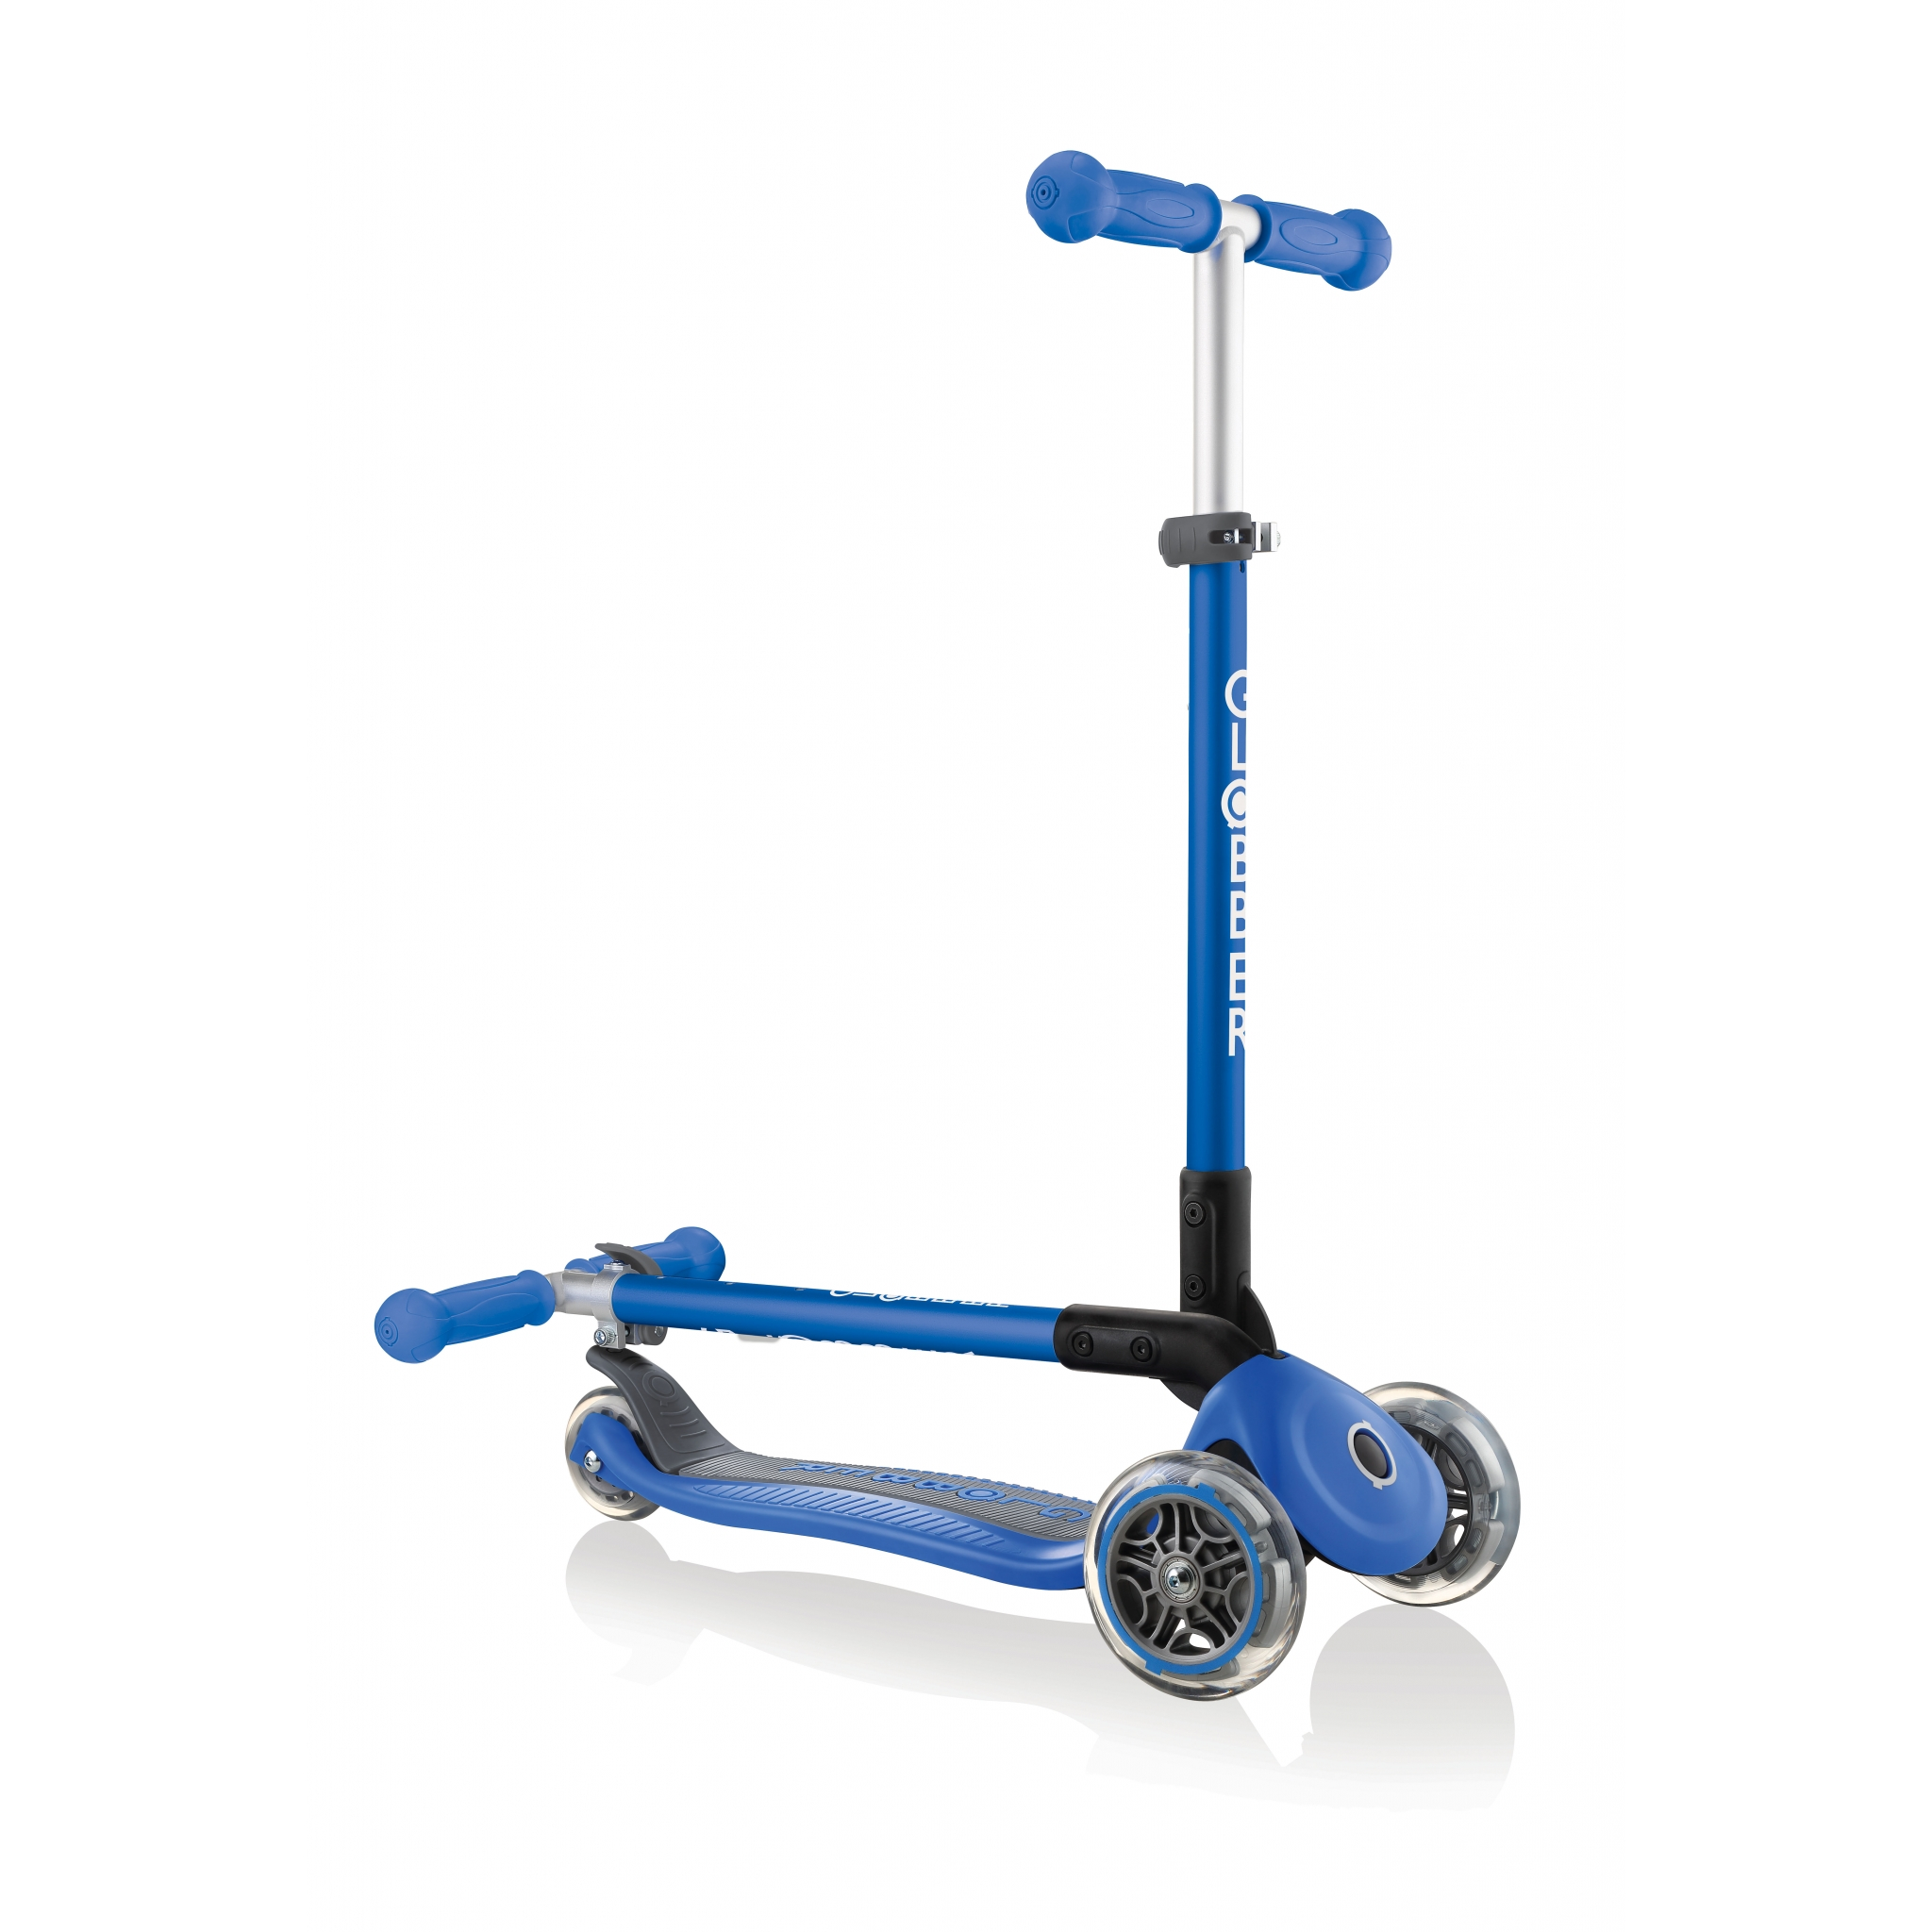 PRIMO-FOLDABLE-3-wheel-fold-up-scooter-for-kids-navy-blue